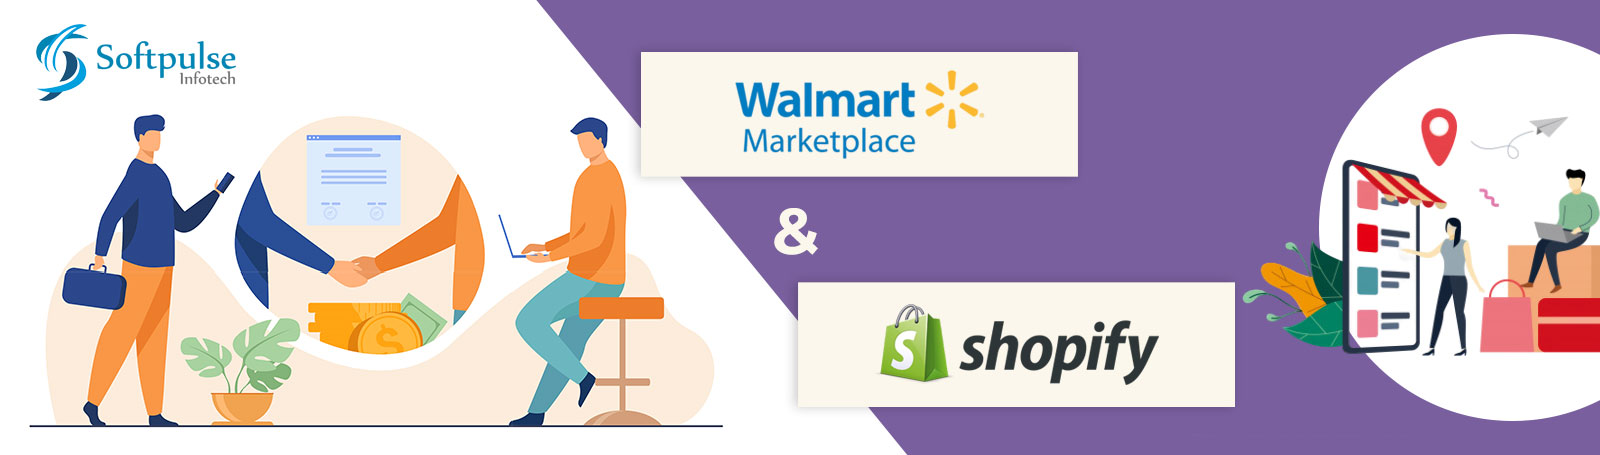 Walmart & Shopify Teams up together for Expanding their Marketplaces